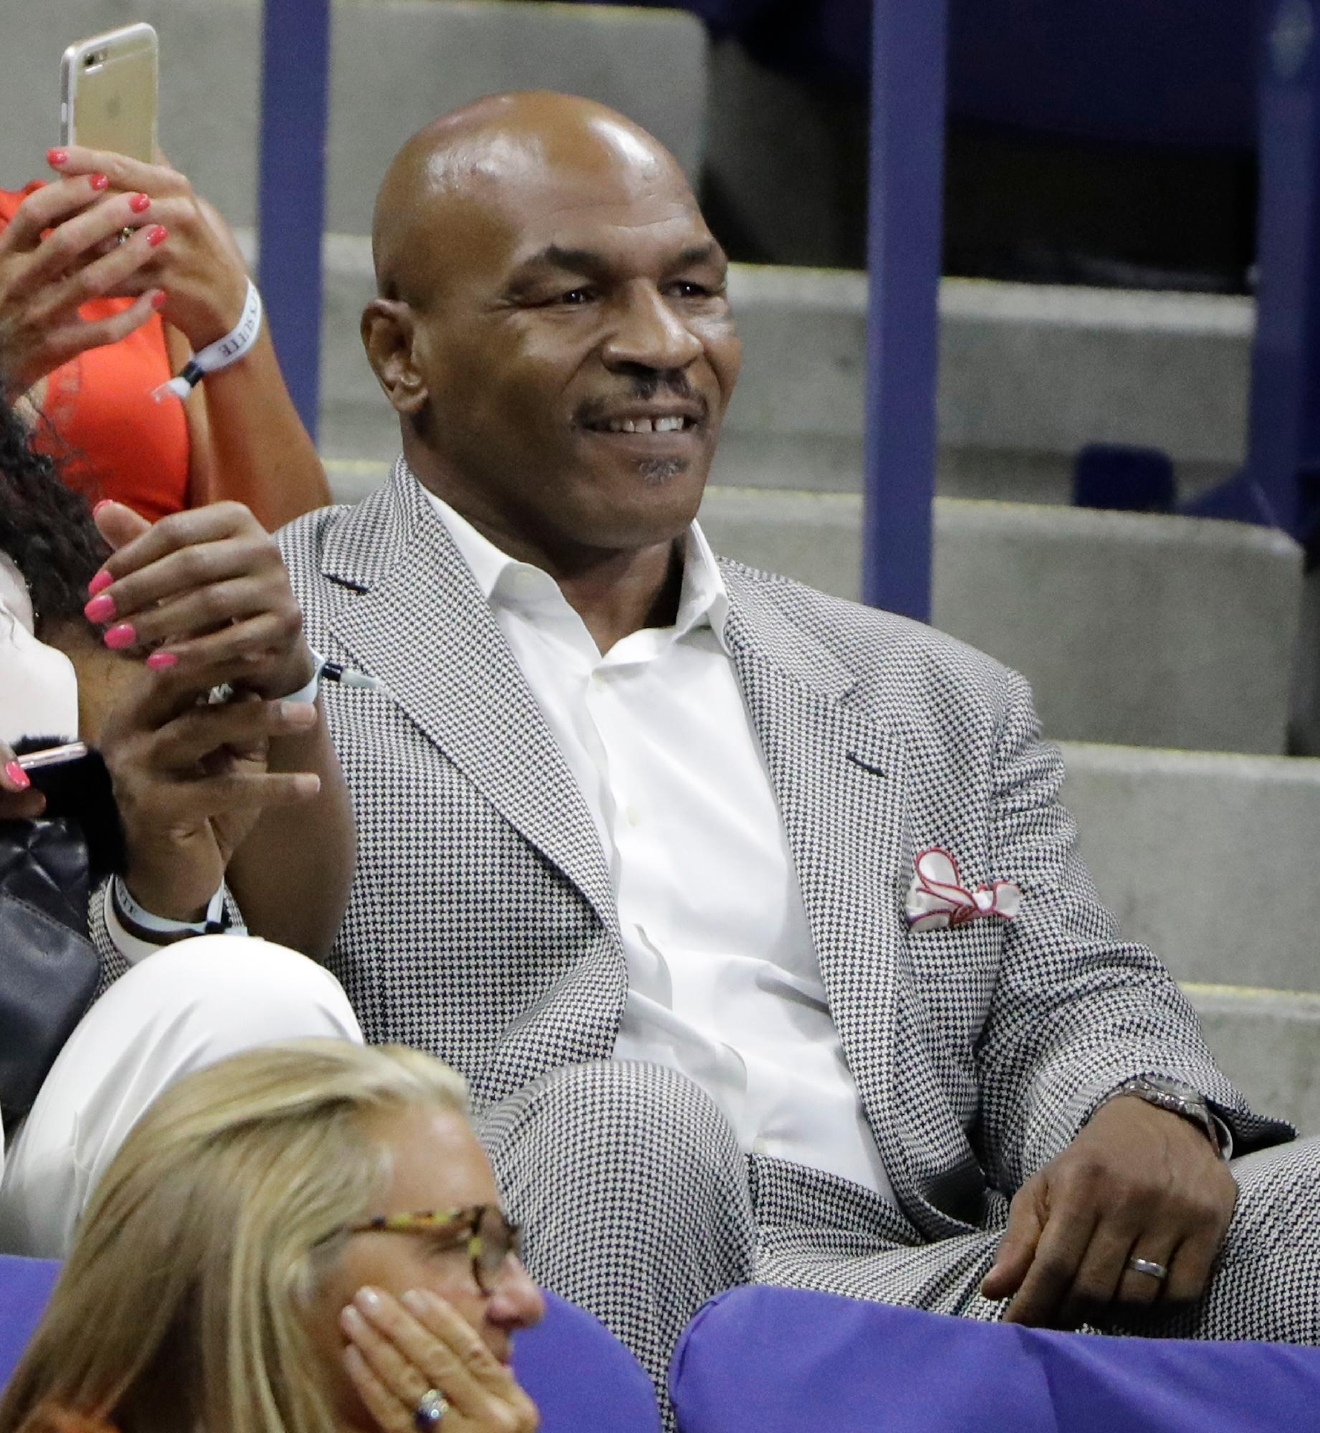 Former heavyweight boxing champion Mike Tyson watches the Novak Djokovic, of Serbia, and Jerzy Janowicz, of Poland, first round match during the US Open tennis tournament, Monday, Aug. 29, 2016, in New York. (AP Photo/Darron Cummings)